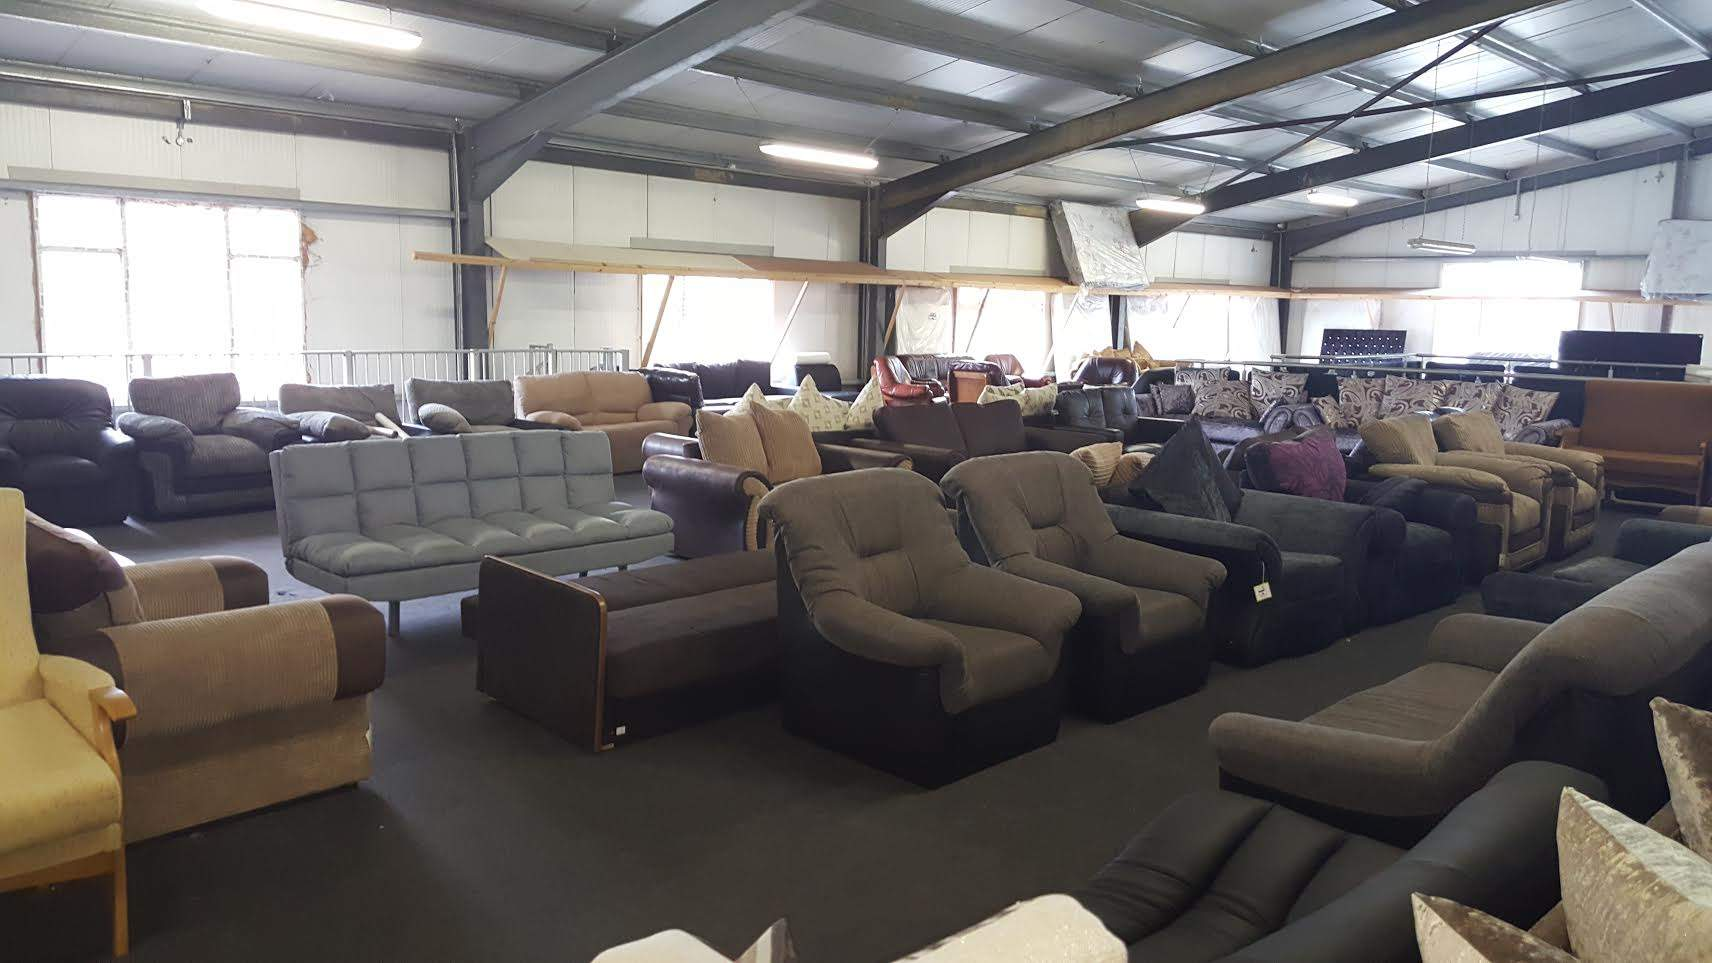 Merveilleux Tom Murphy And Sons Furniture . Call In To Our Showroom And See Our  Selection Of Quality Beds And Mattresses We Have All Makes And Sizes And At  The Right ...